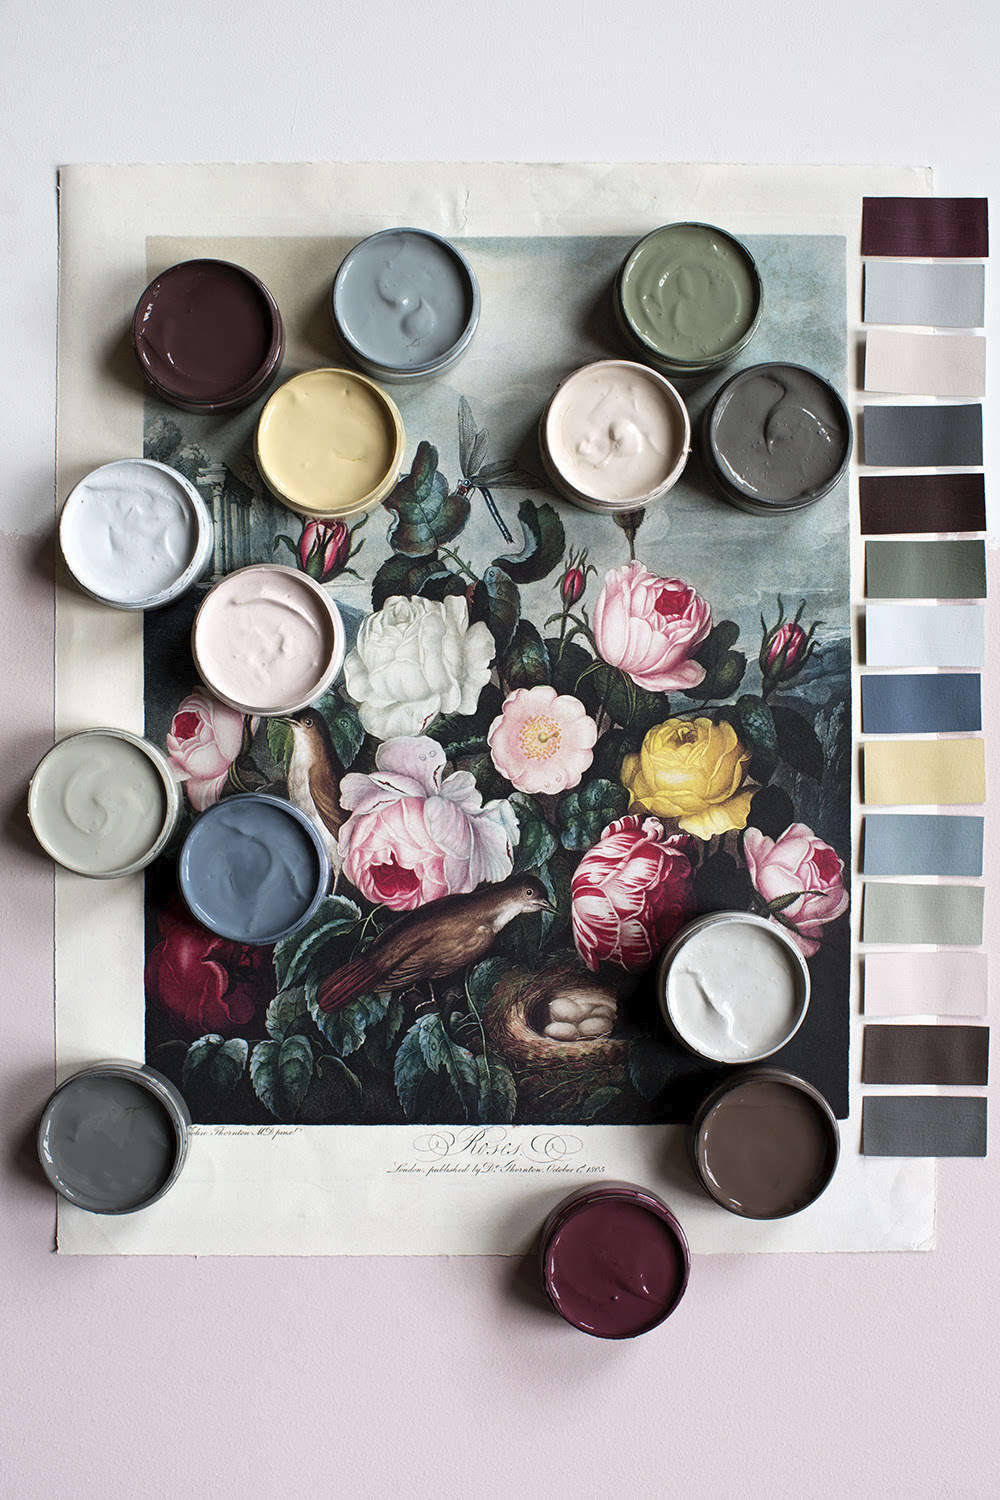 "London designer Cassandra Ellis has just launched a new palette of 14 colors she calls Human Natura. ""We created this palette in response to the deep connection between people, humanity and nature,"" Cassandra says. ""Their center of gravity is fixed by a deep respect for the past, connected to how we choose to live now and in the future. Quiet, emotive, and timeless"""